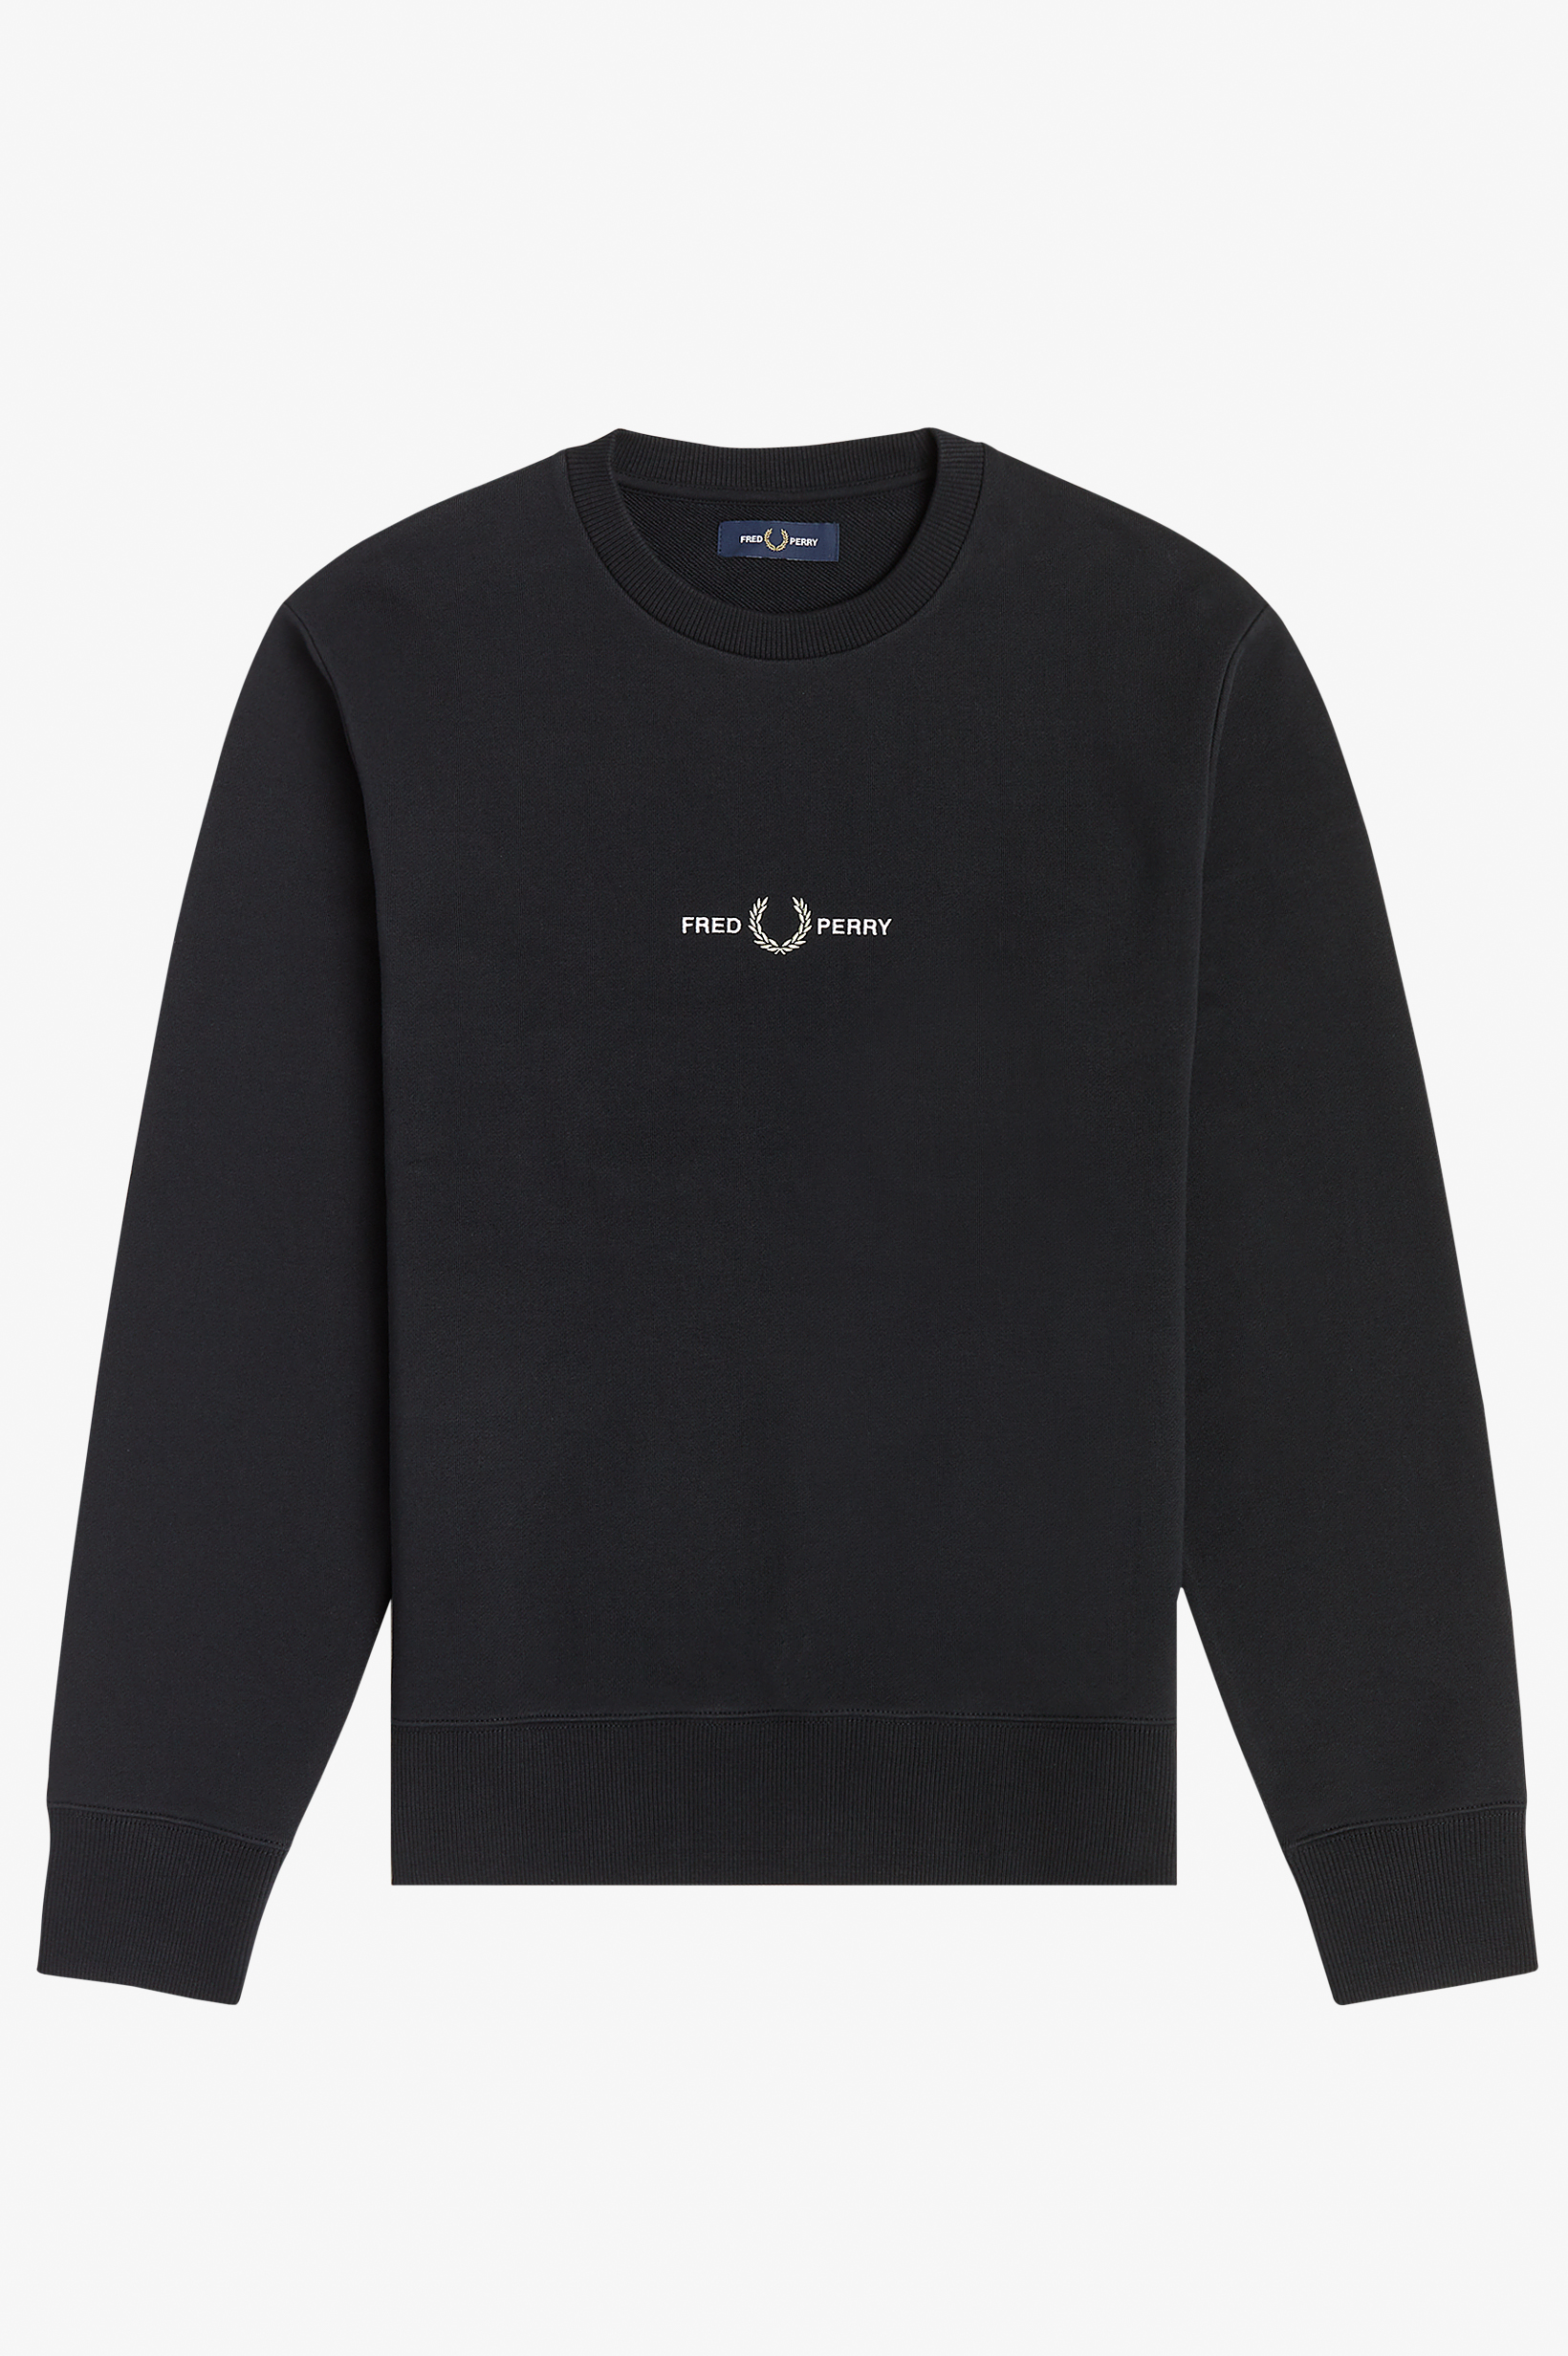 Fred Perry - EMBROIDERED SWEATSHIRT - Black